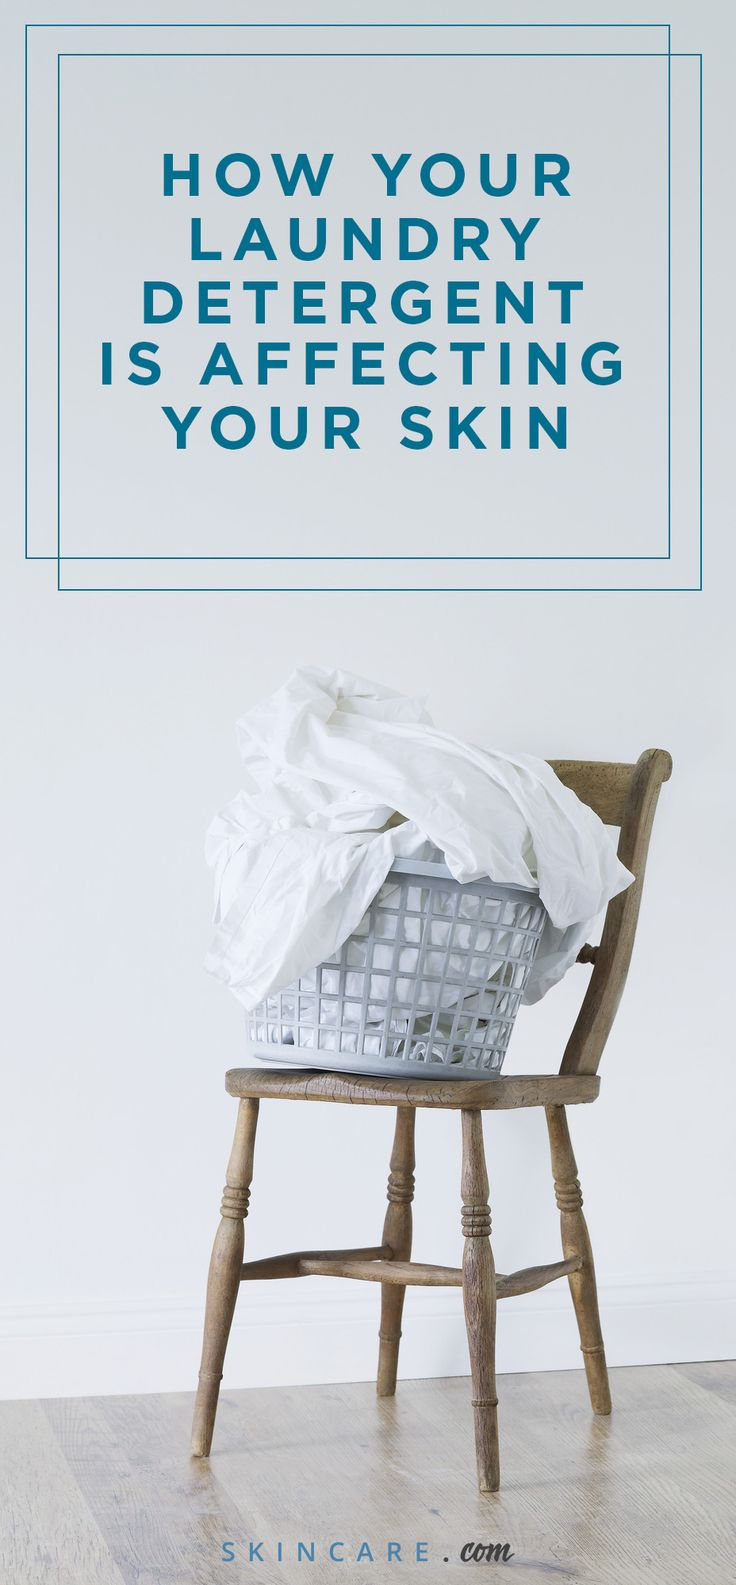 No amount of fresh scented laundry detergent and clean sheets will make laundry days better— especially if your laundry detergent is causing your skin to breakout. We aren't talking acne breakouts, we're talking contact dermatitis, a skin irritation that can be caused by an allergic reaction to your laundry detergent. We spoke with a top dermatologist about how laundry detergent can cause the skin to breakout and what to do about these breakouts.